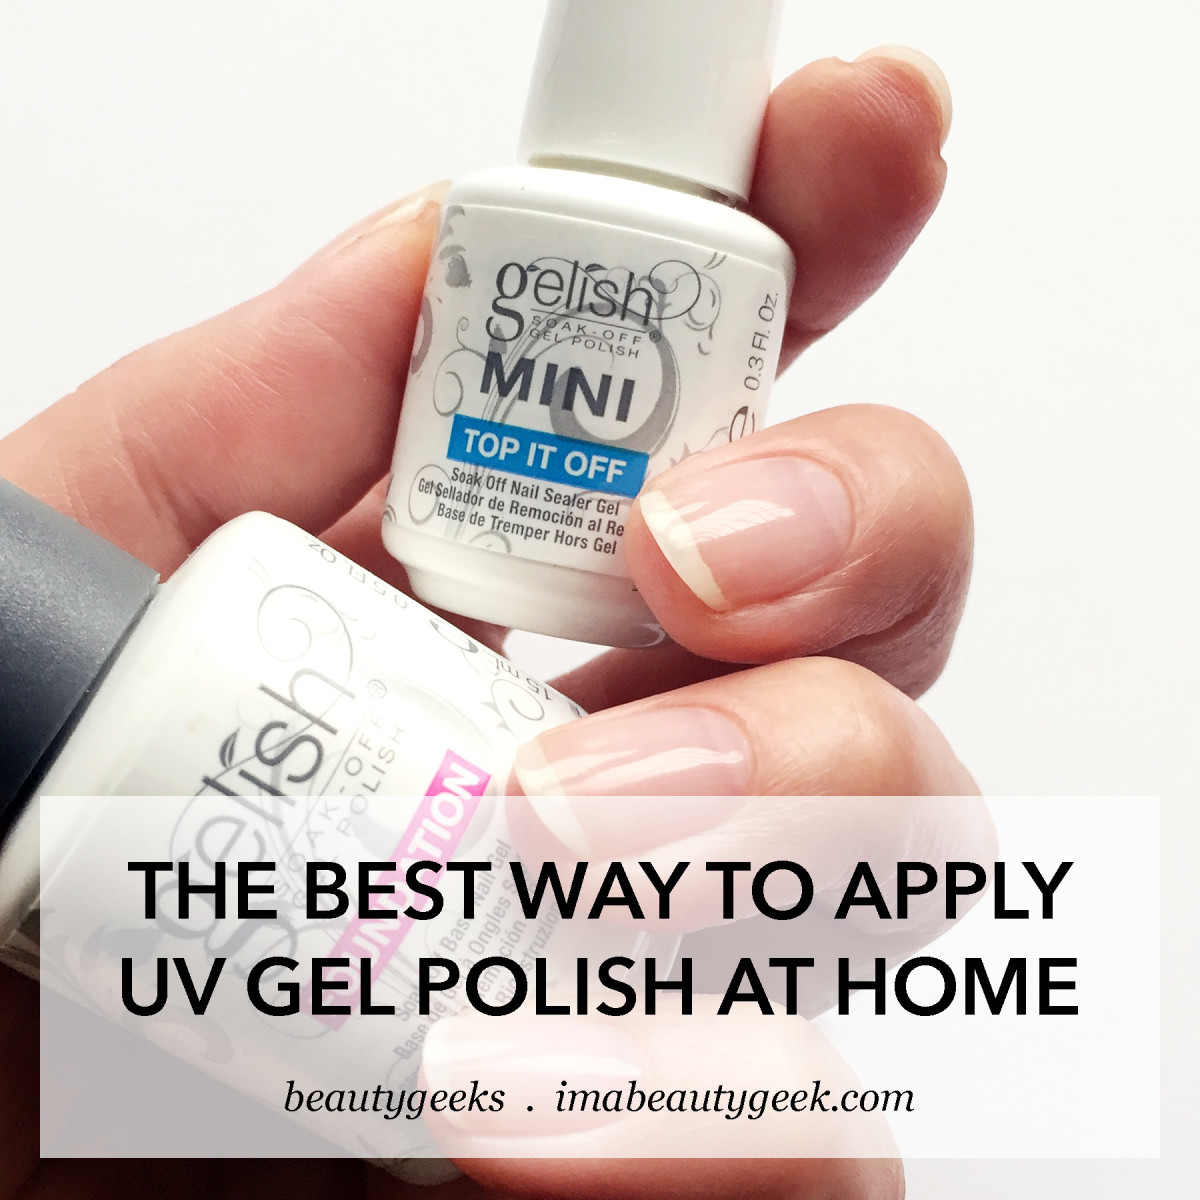 The Best Way To Apply Uv Gel Polish At Home